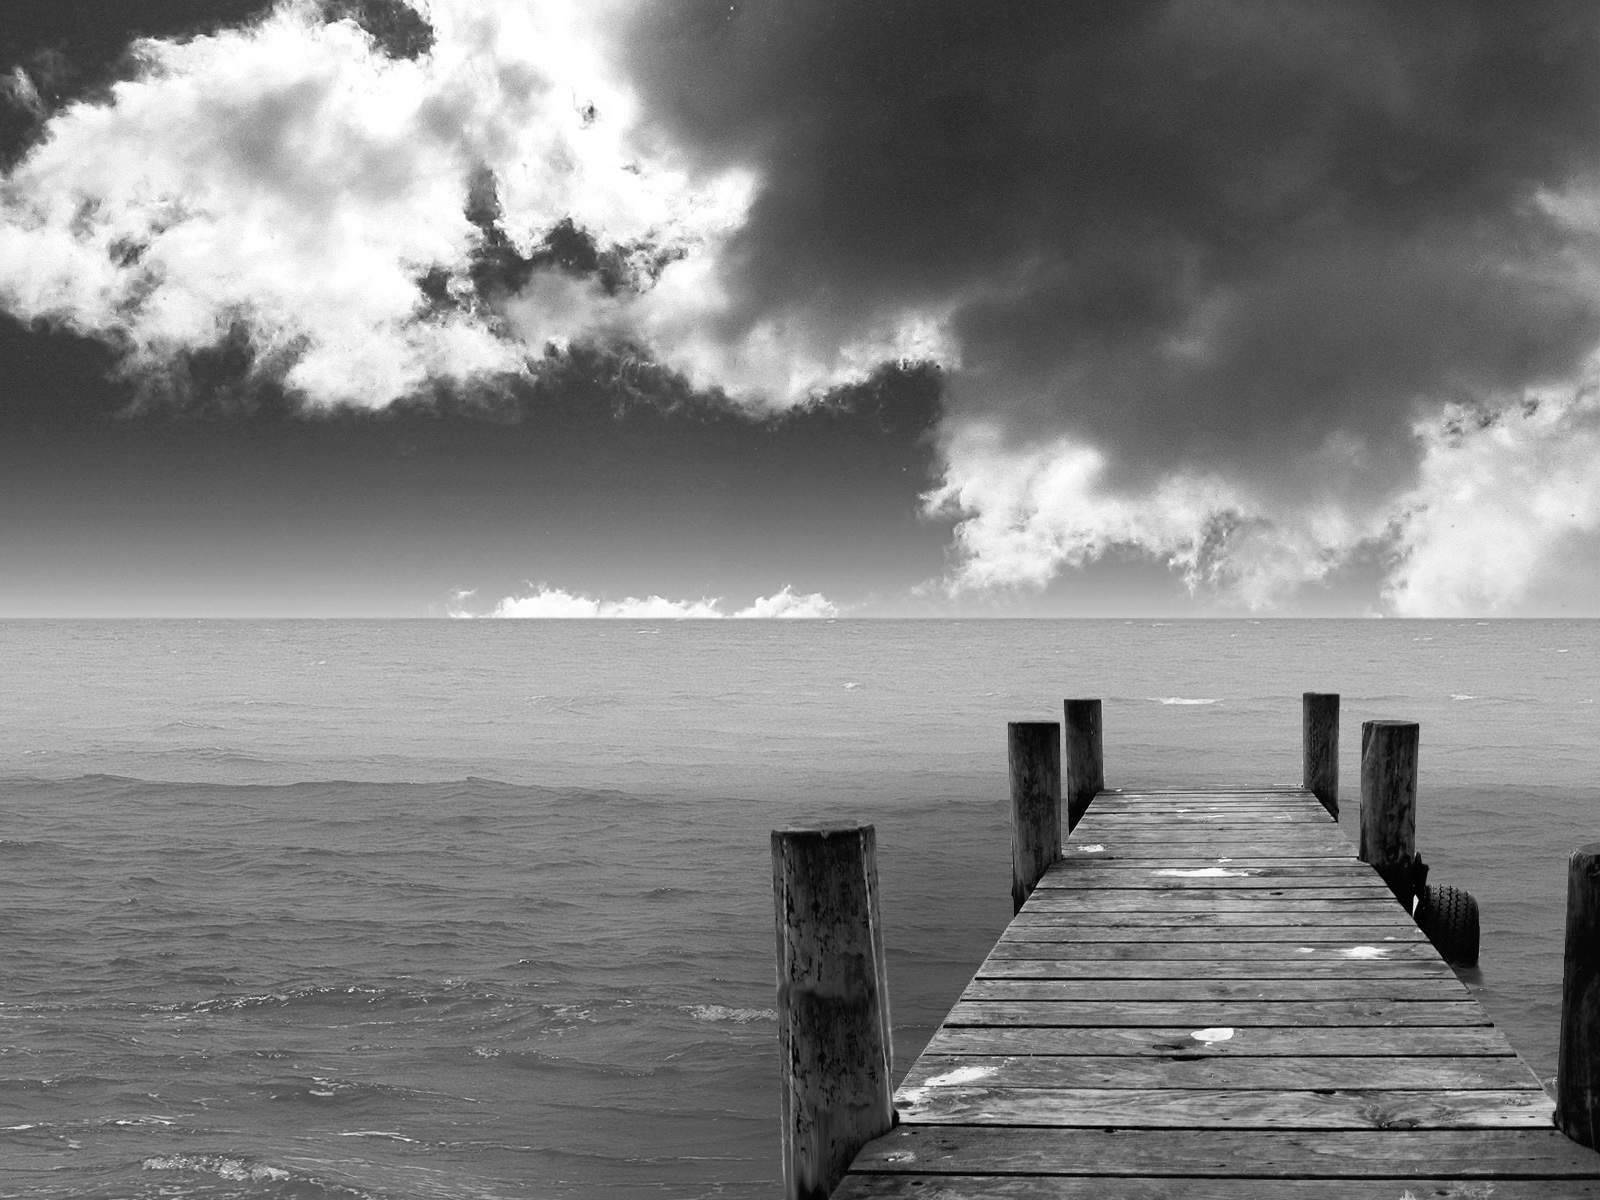 Black And White Beach Landscape Wallpaper Hd 12 Fleetinglife